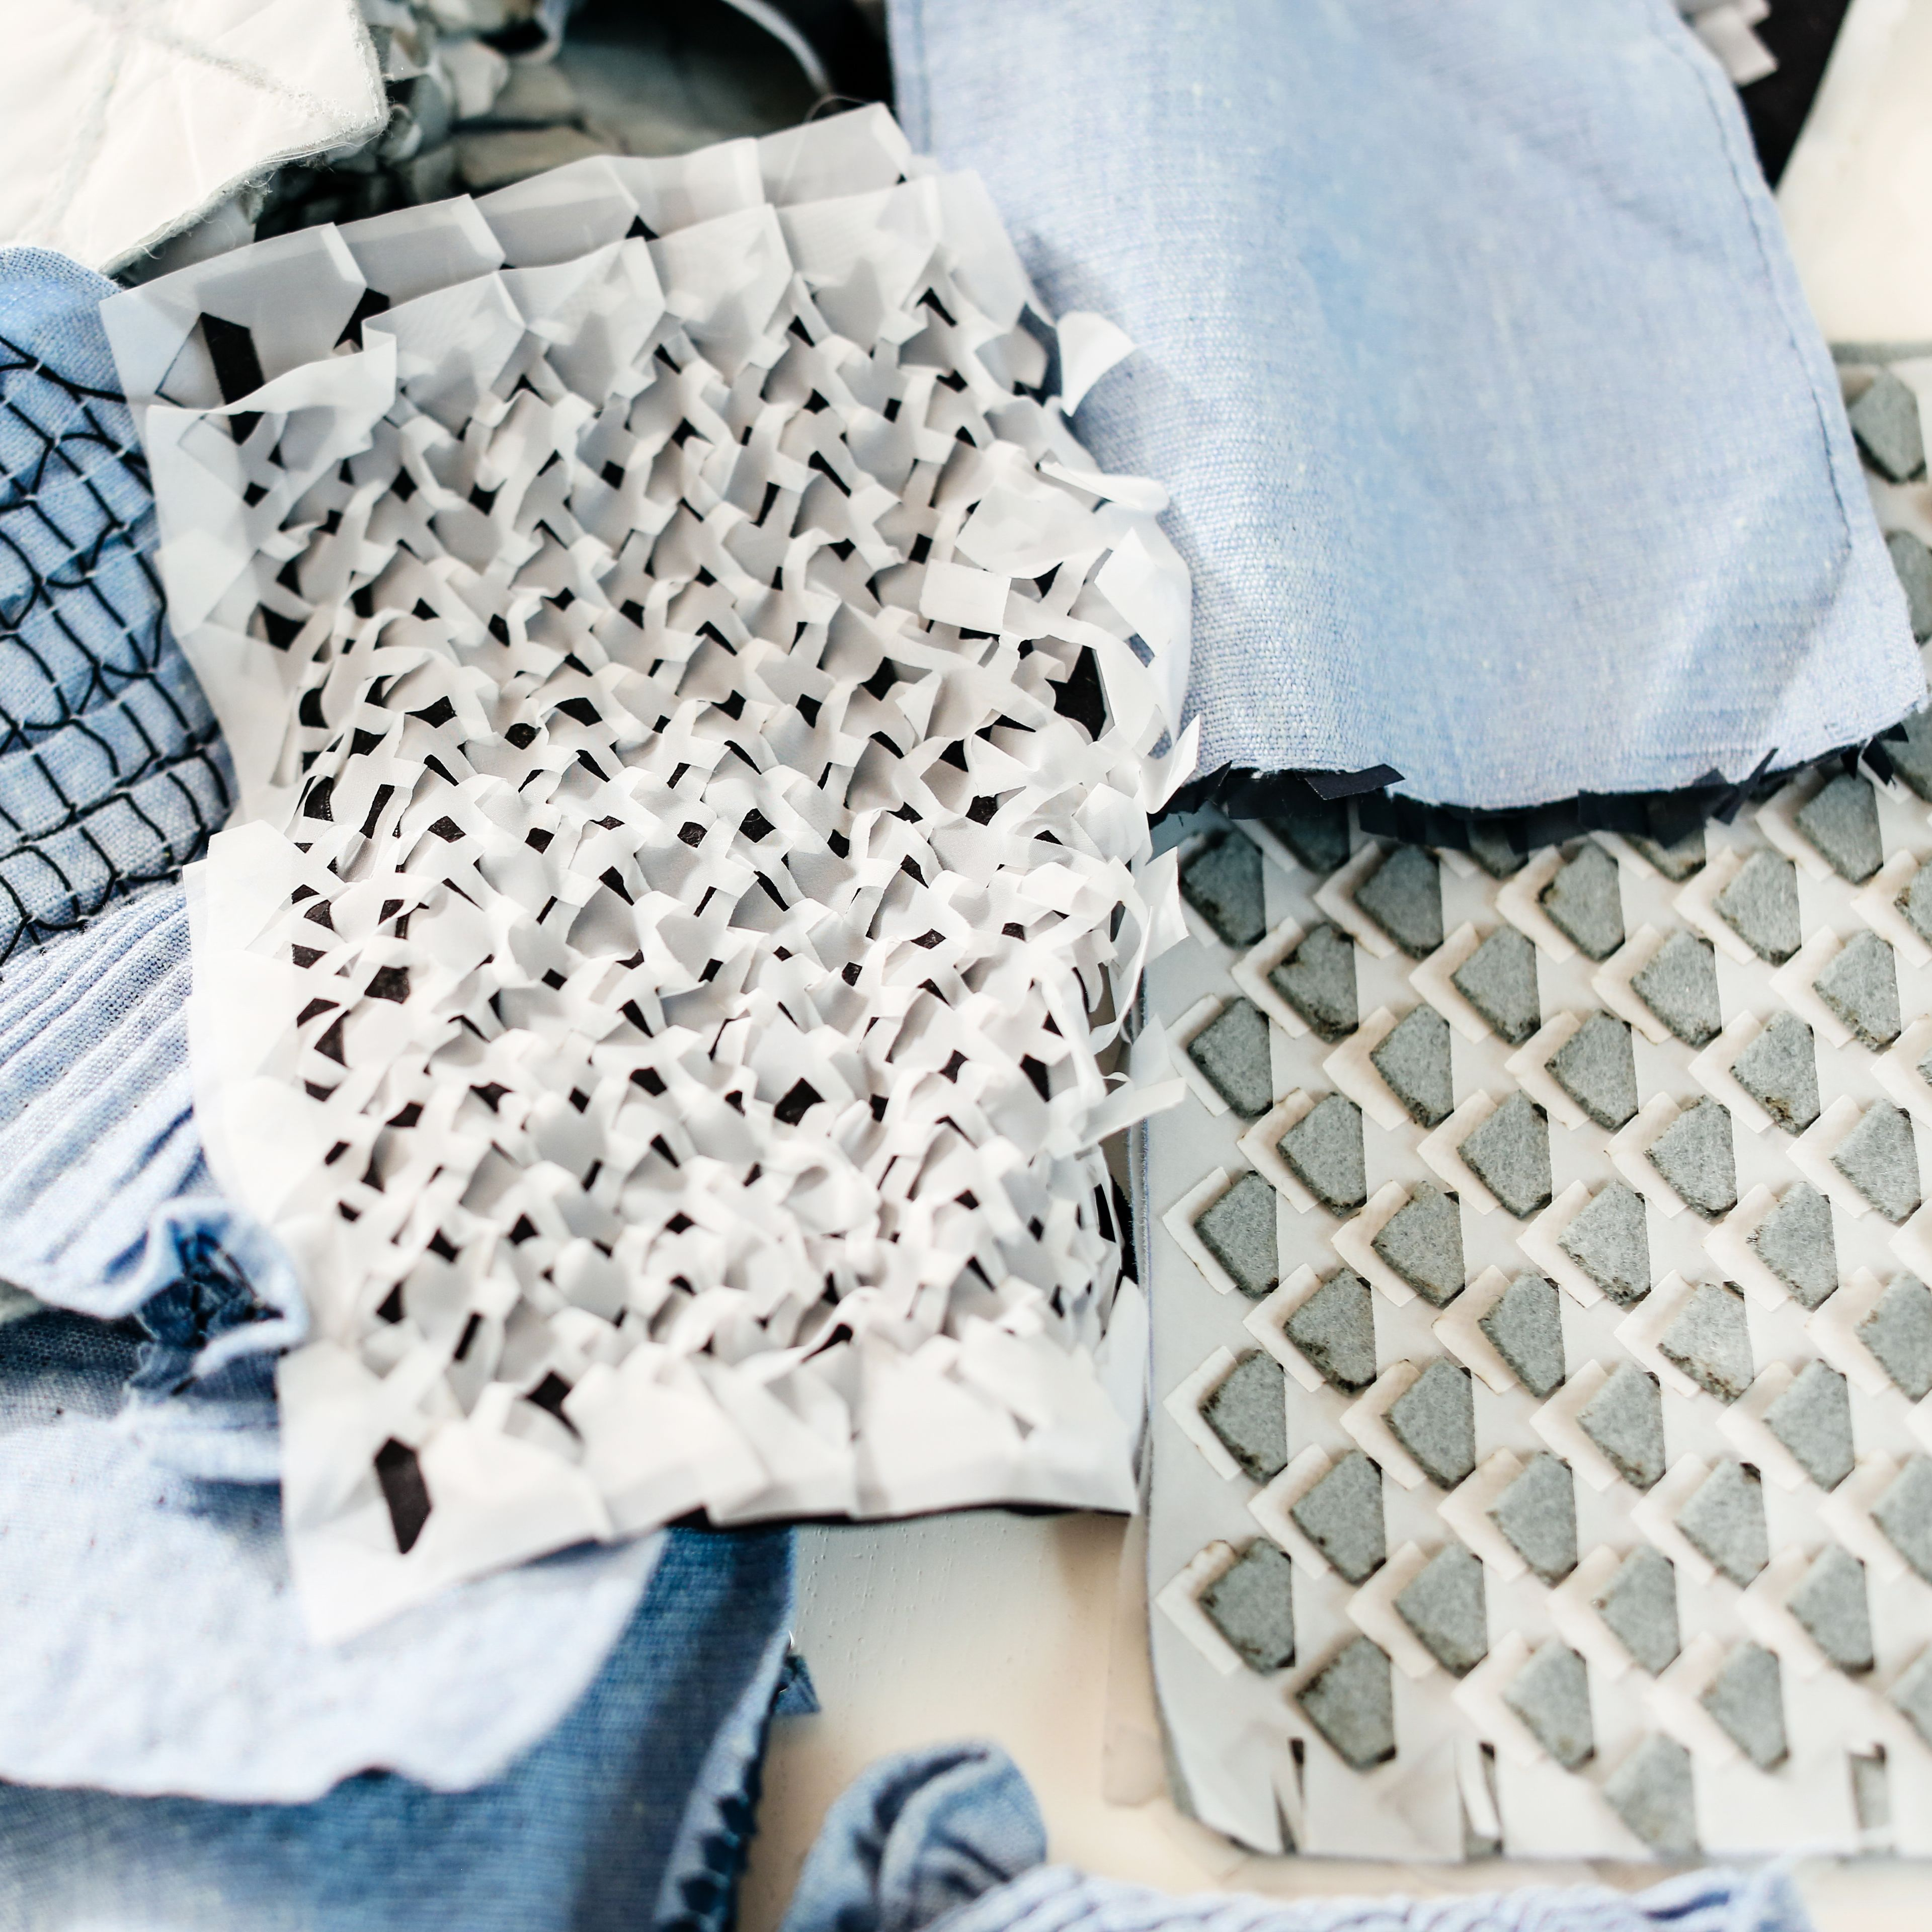 A collection of textured swatches in whites and blues.